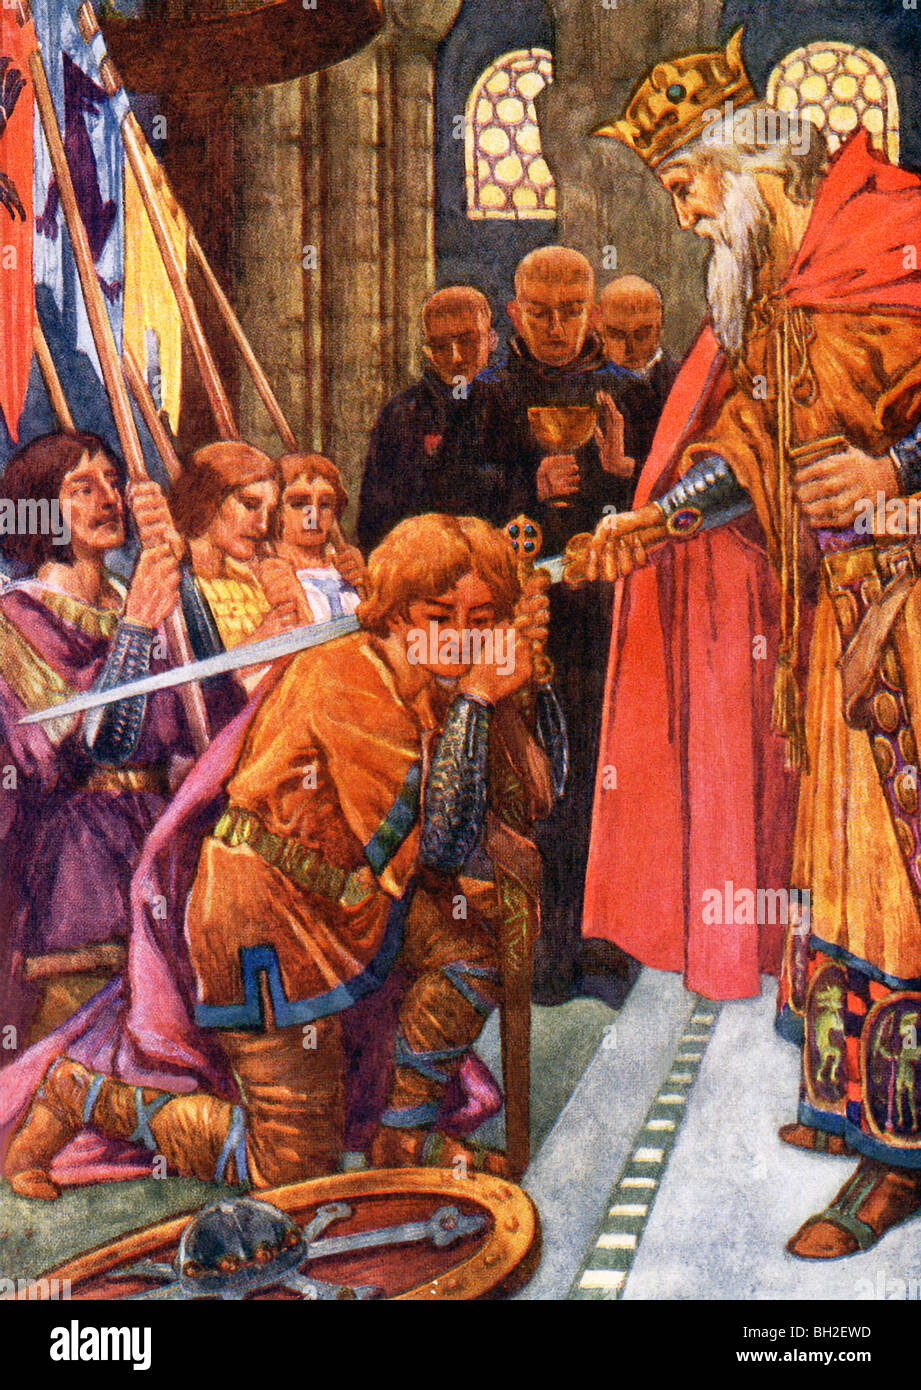 King Siegmund of the Netherlands is shown here knighting his son, Prince Siegfried, the famed hero of German mythology. - Stock Image